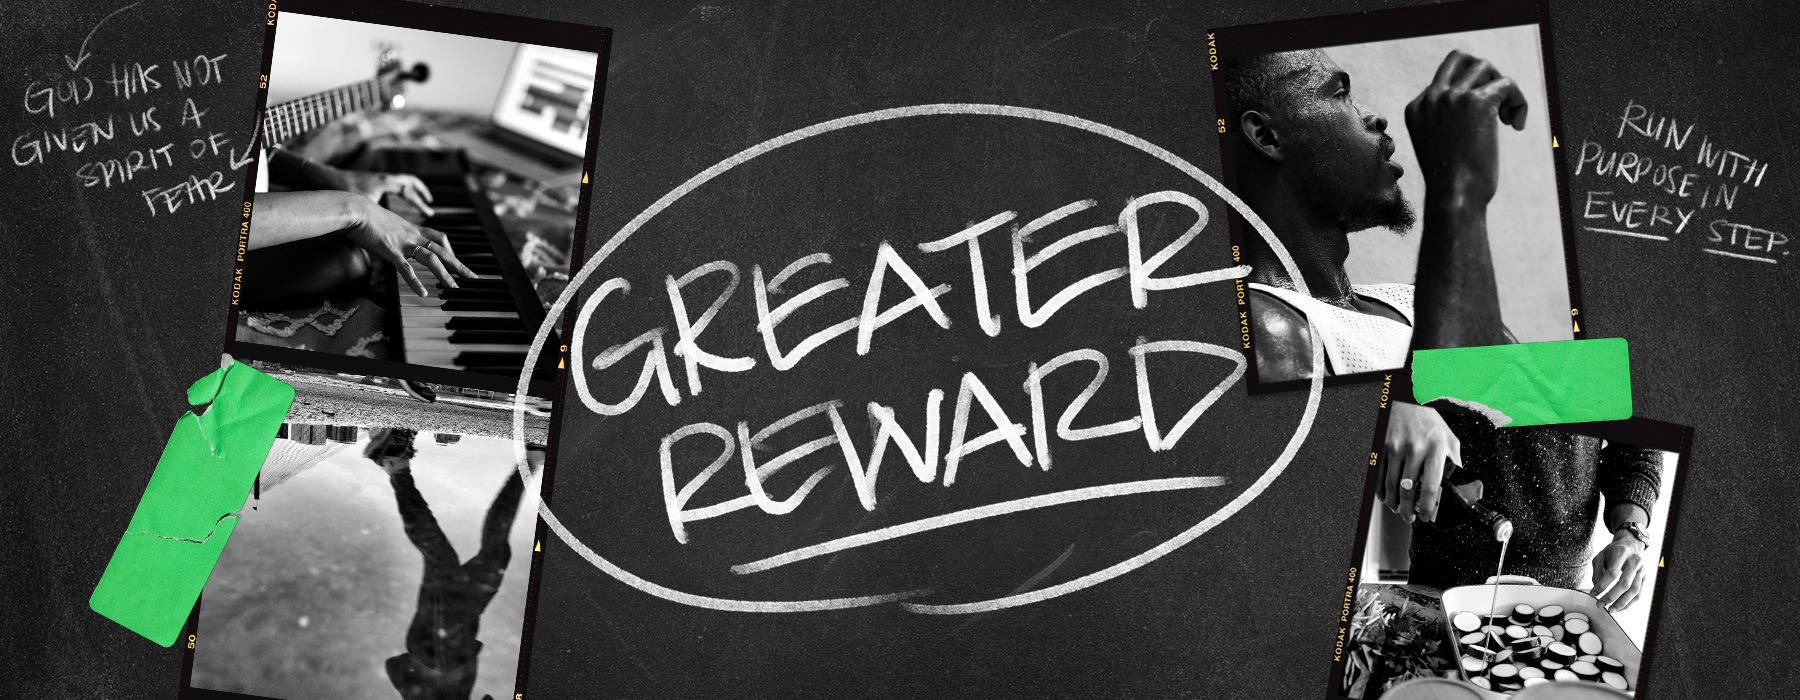 Greater Reward